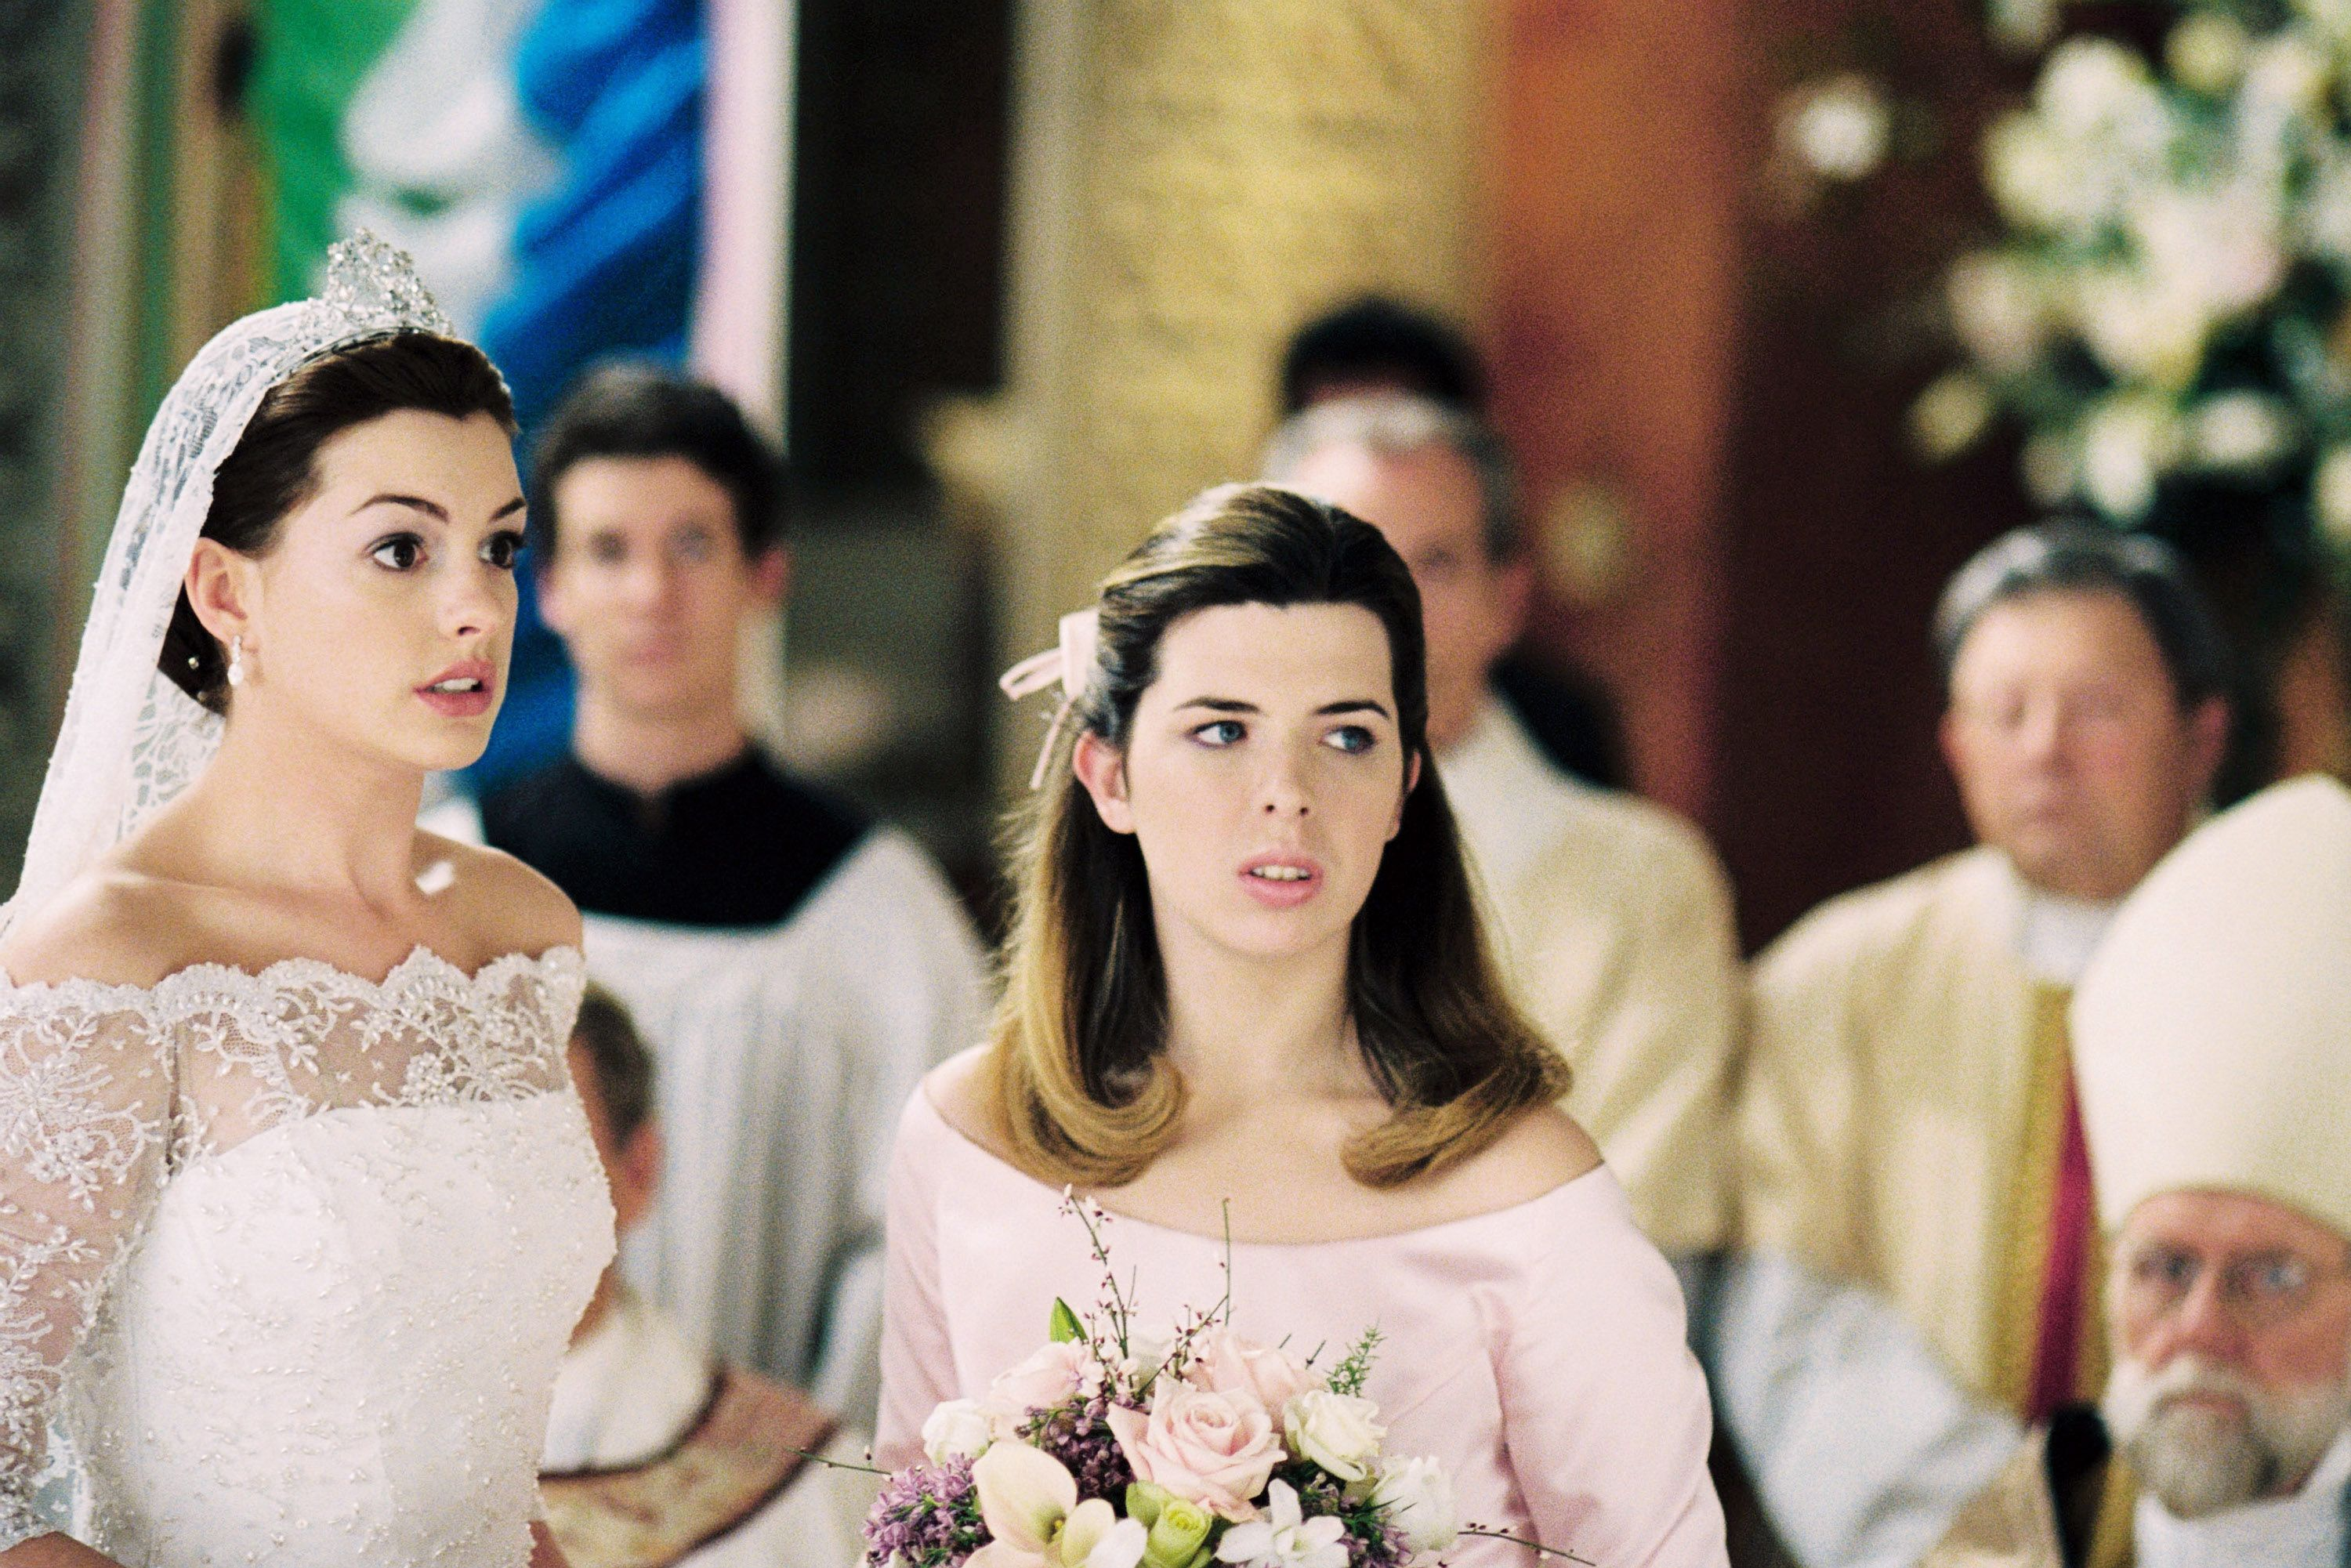 THE PRINCESS DIARIES 2: ROYAL ENGAGEMENT, front from left: Anne Hathaway, Heather Matarazzo, 2004, ©